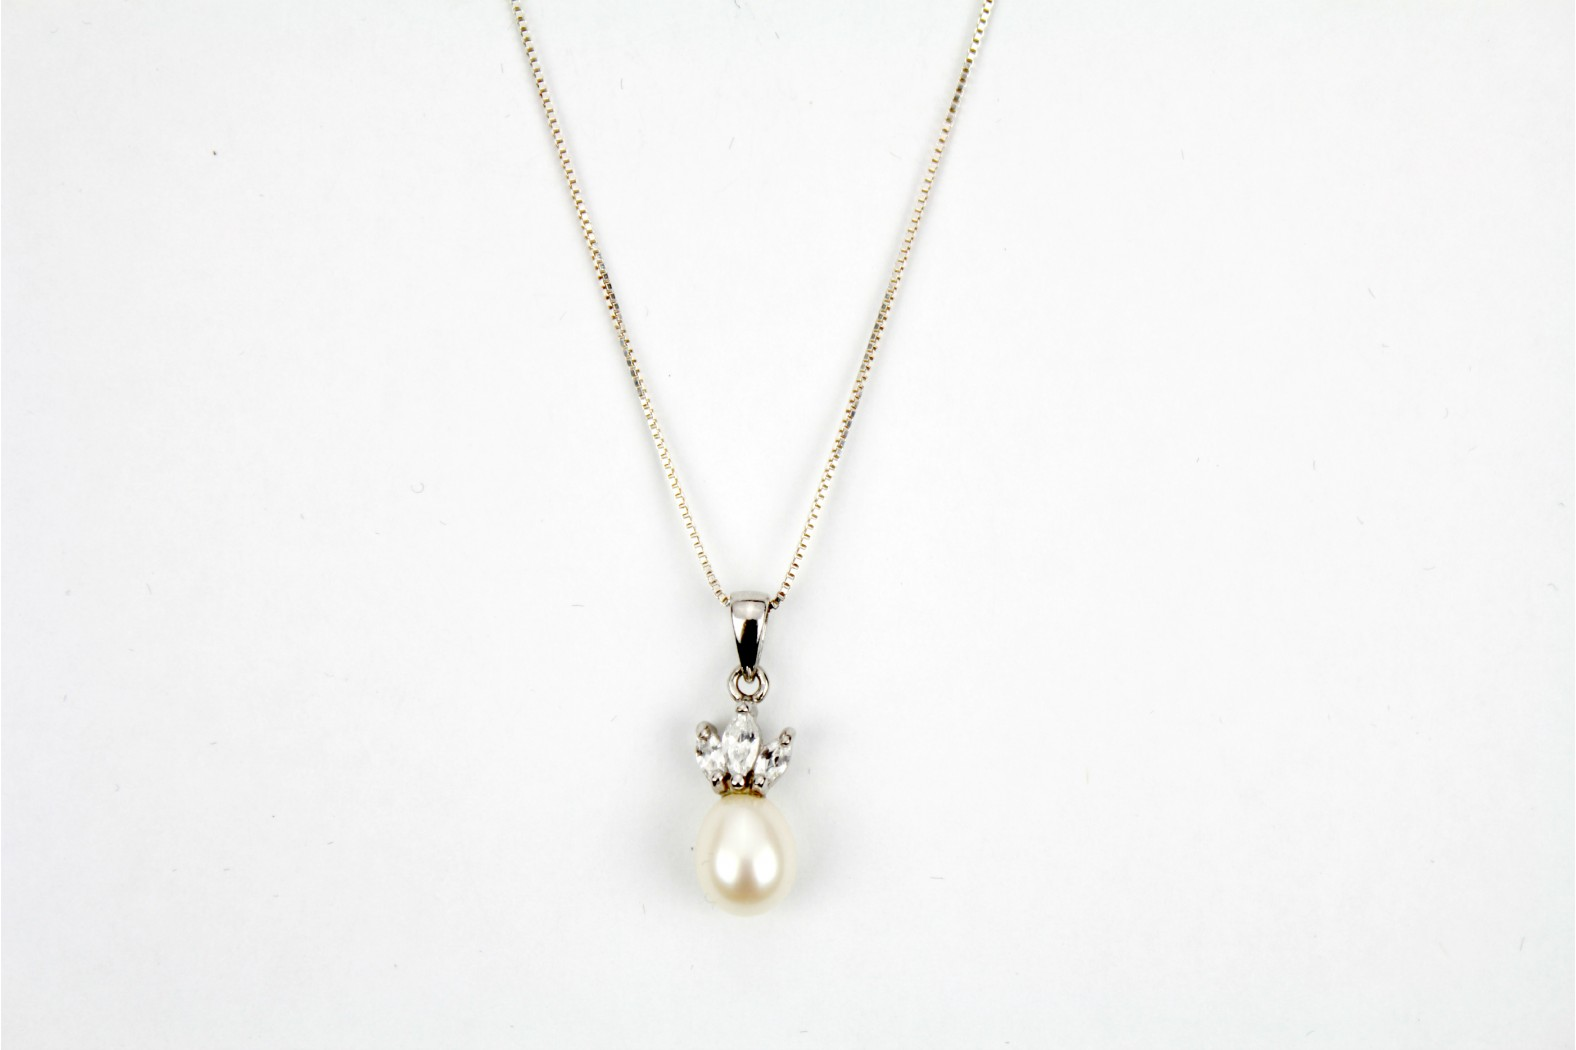 Beautiful Pearl drop triple set cubic zirconia on 16ins 40cm curb chain. DELIVERY 10 WORKING DAYS